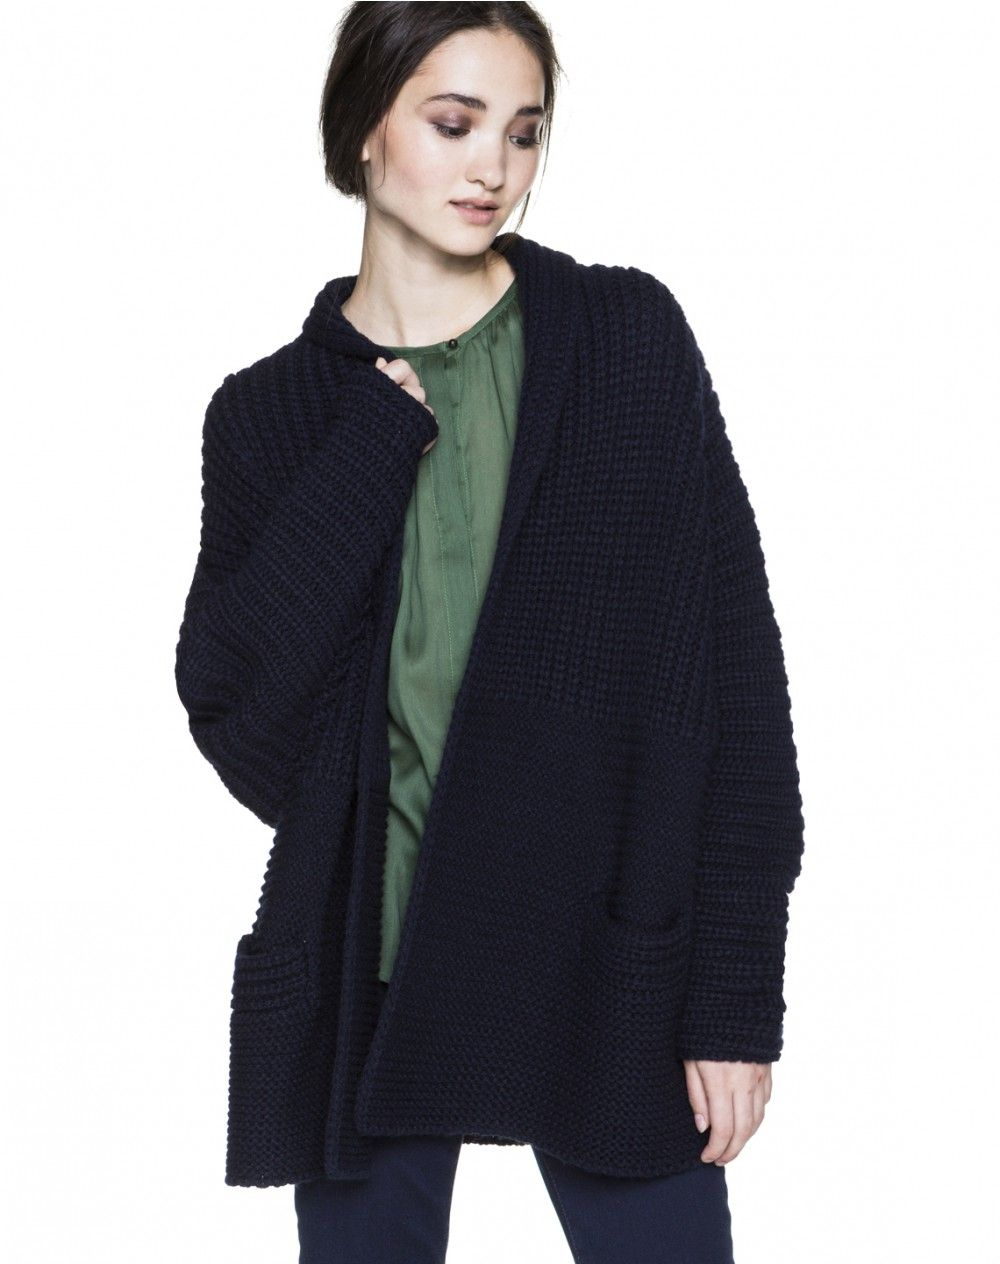 Maxi cardigan - NEW COLLECTION - WOMAN